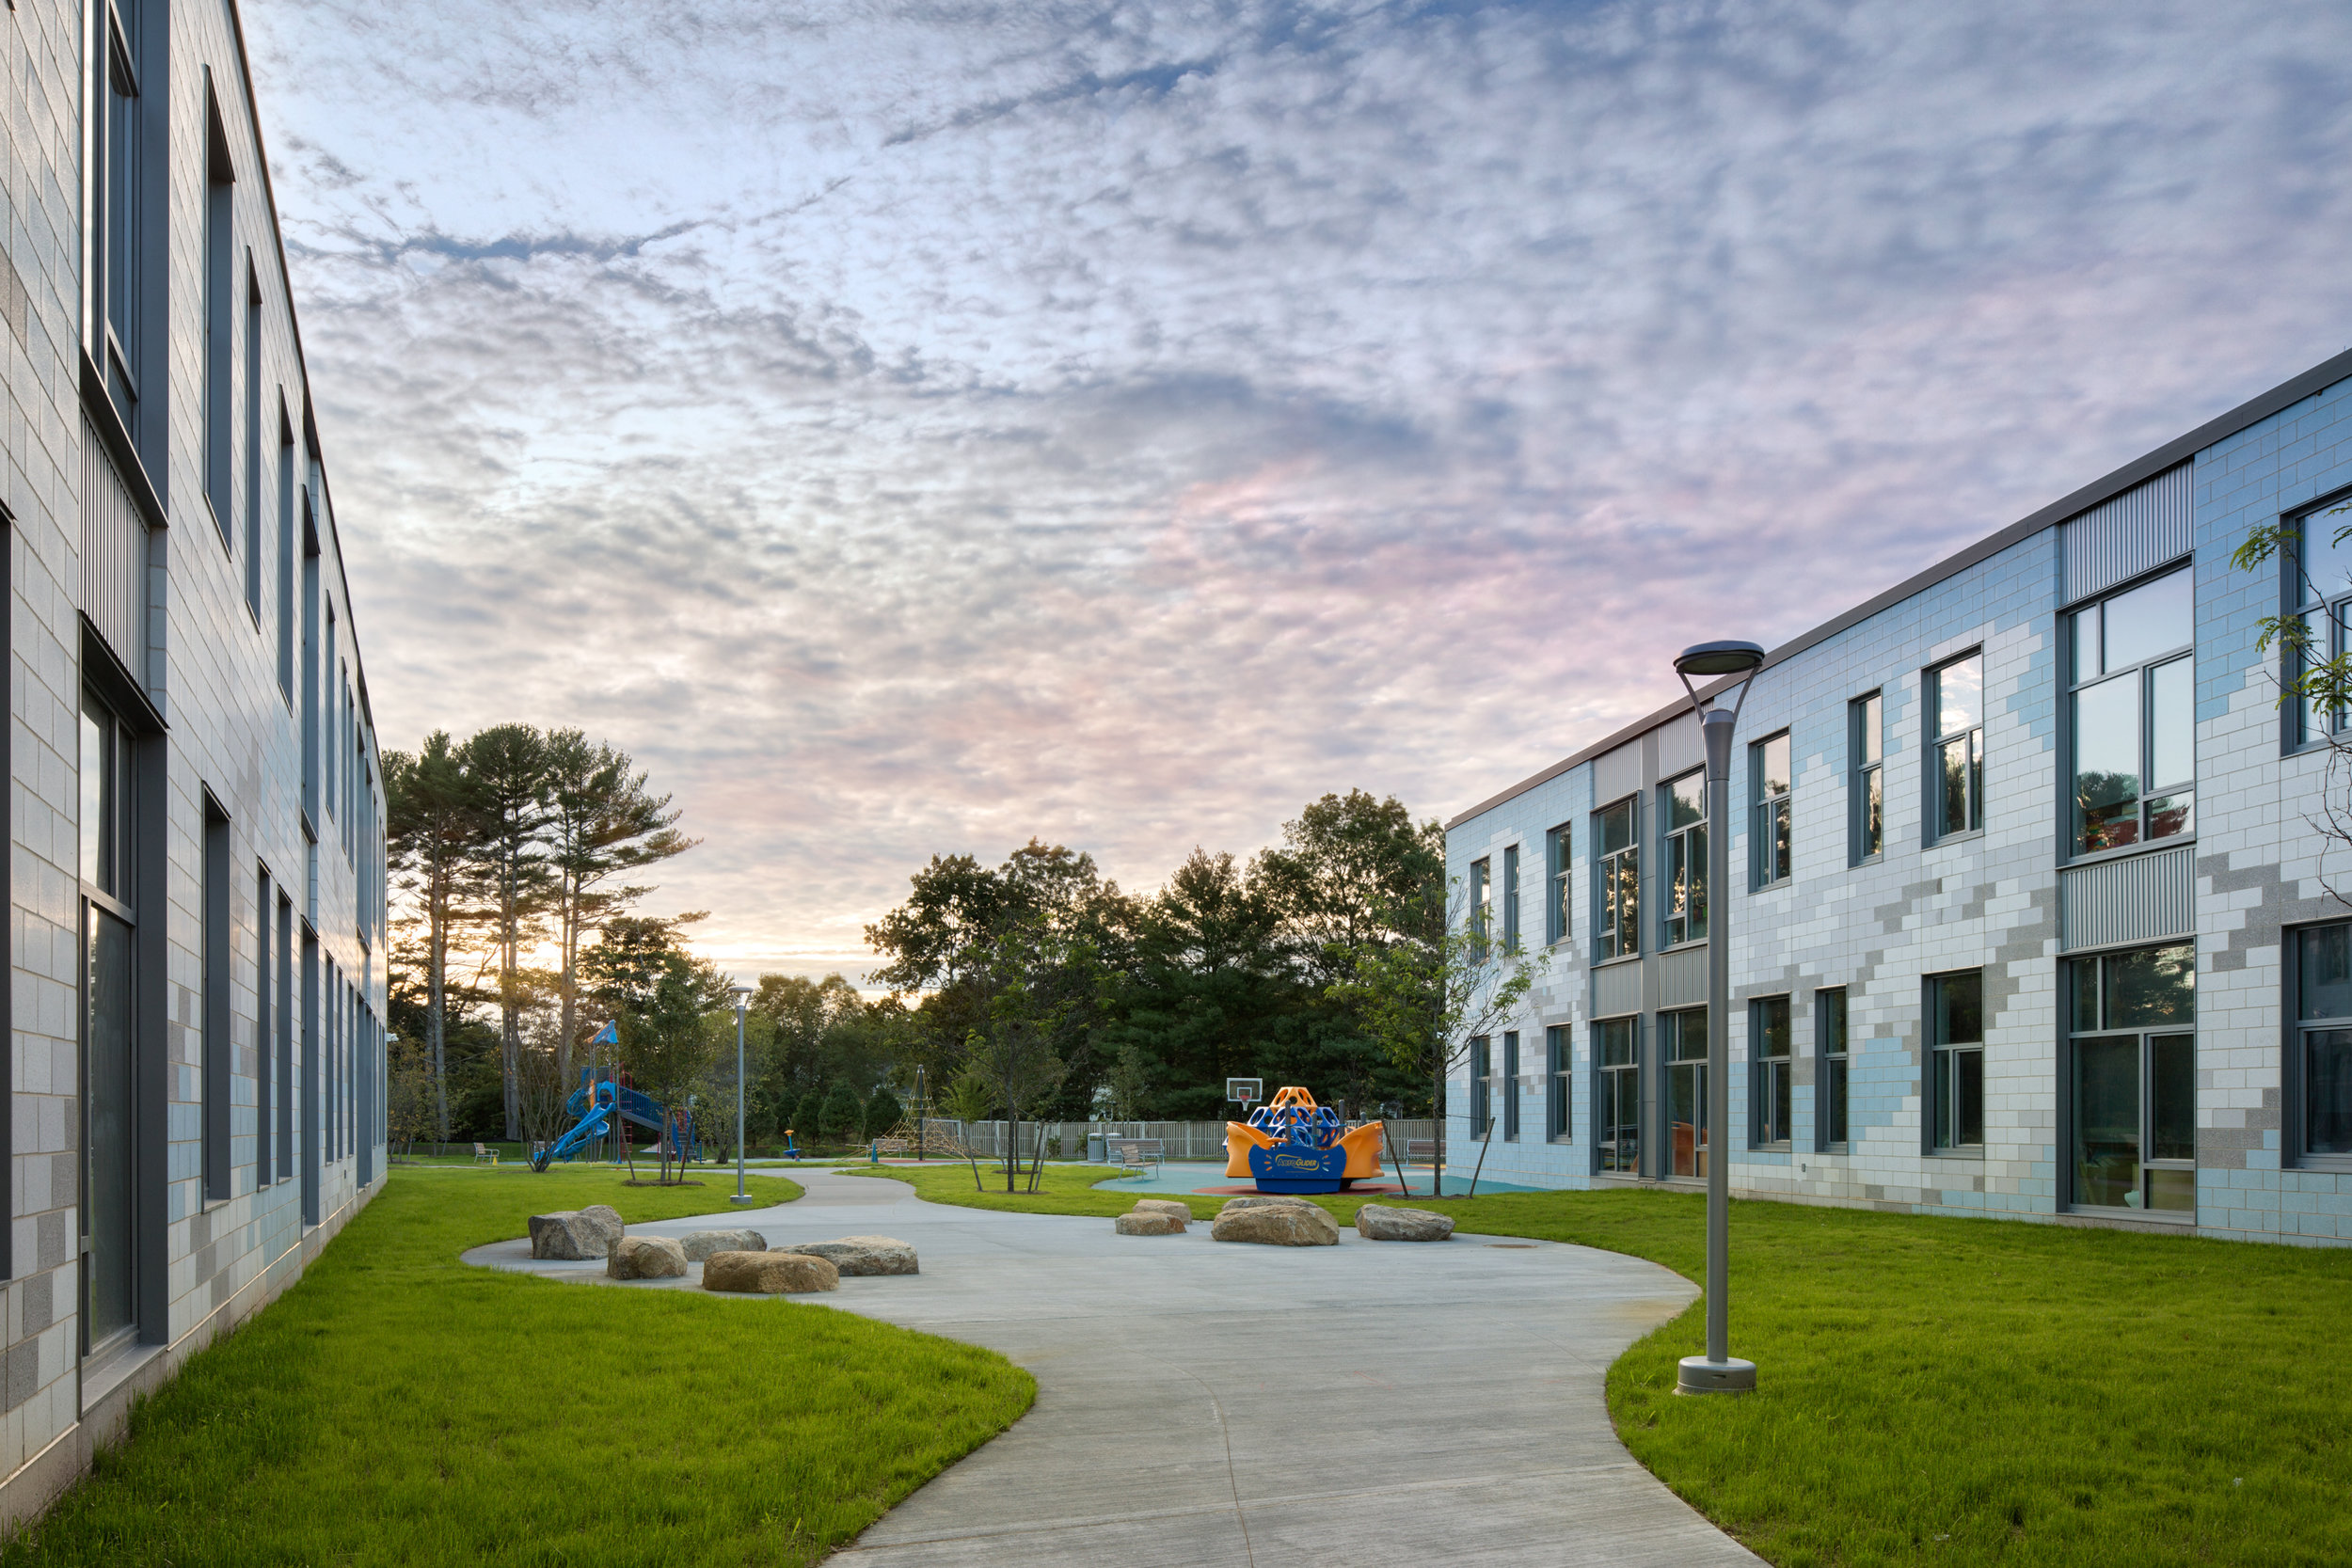 Carver Elementary School Courtyard (Photo by Ed Wonsek)